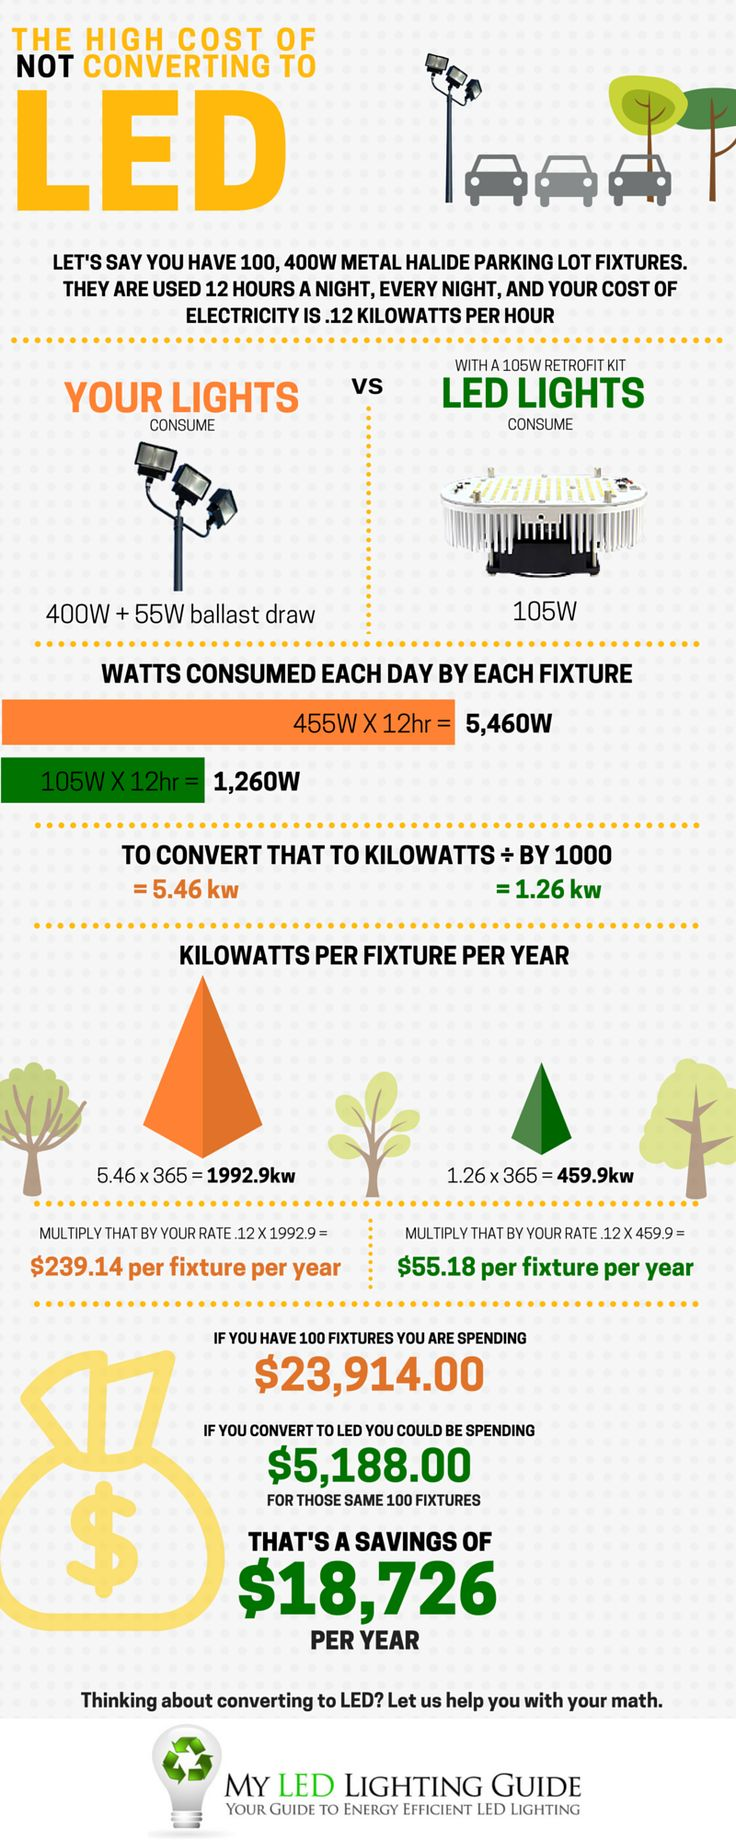 Energy savings ballast cross reference - The High Cost Of Not Converting To Led Infographic Retrofit You 400w Metal Halide Fixtures